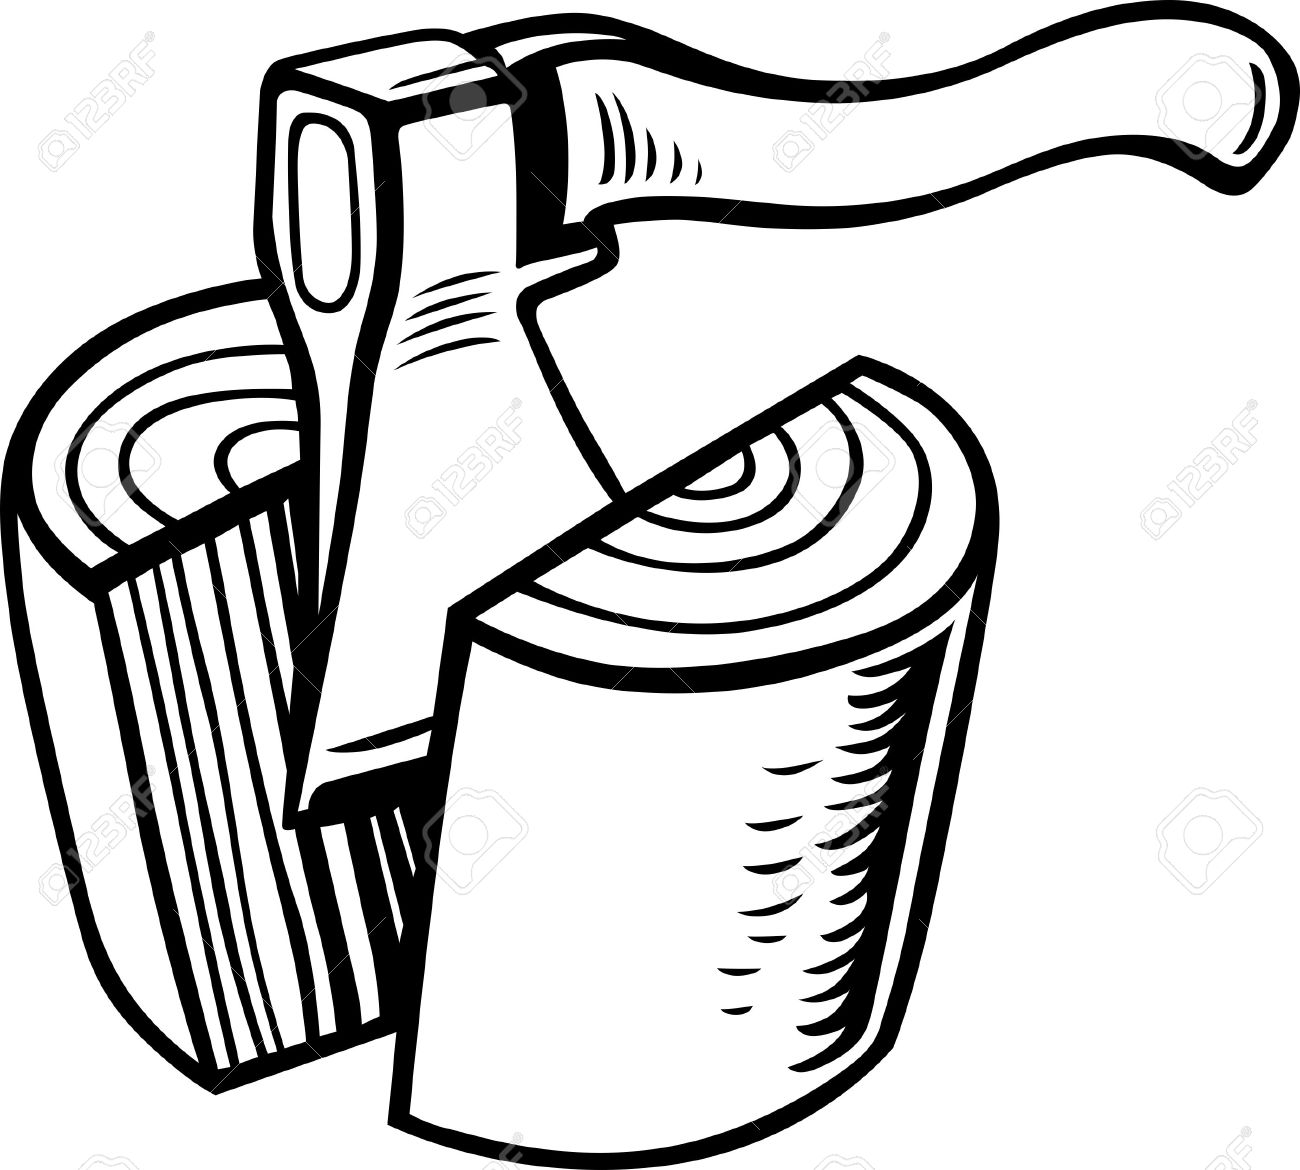 Chop clipart black and white.